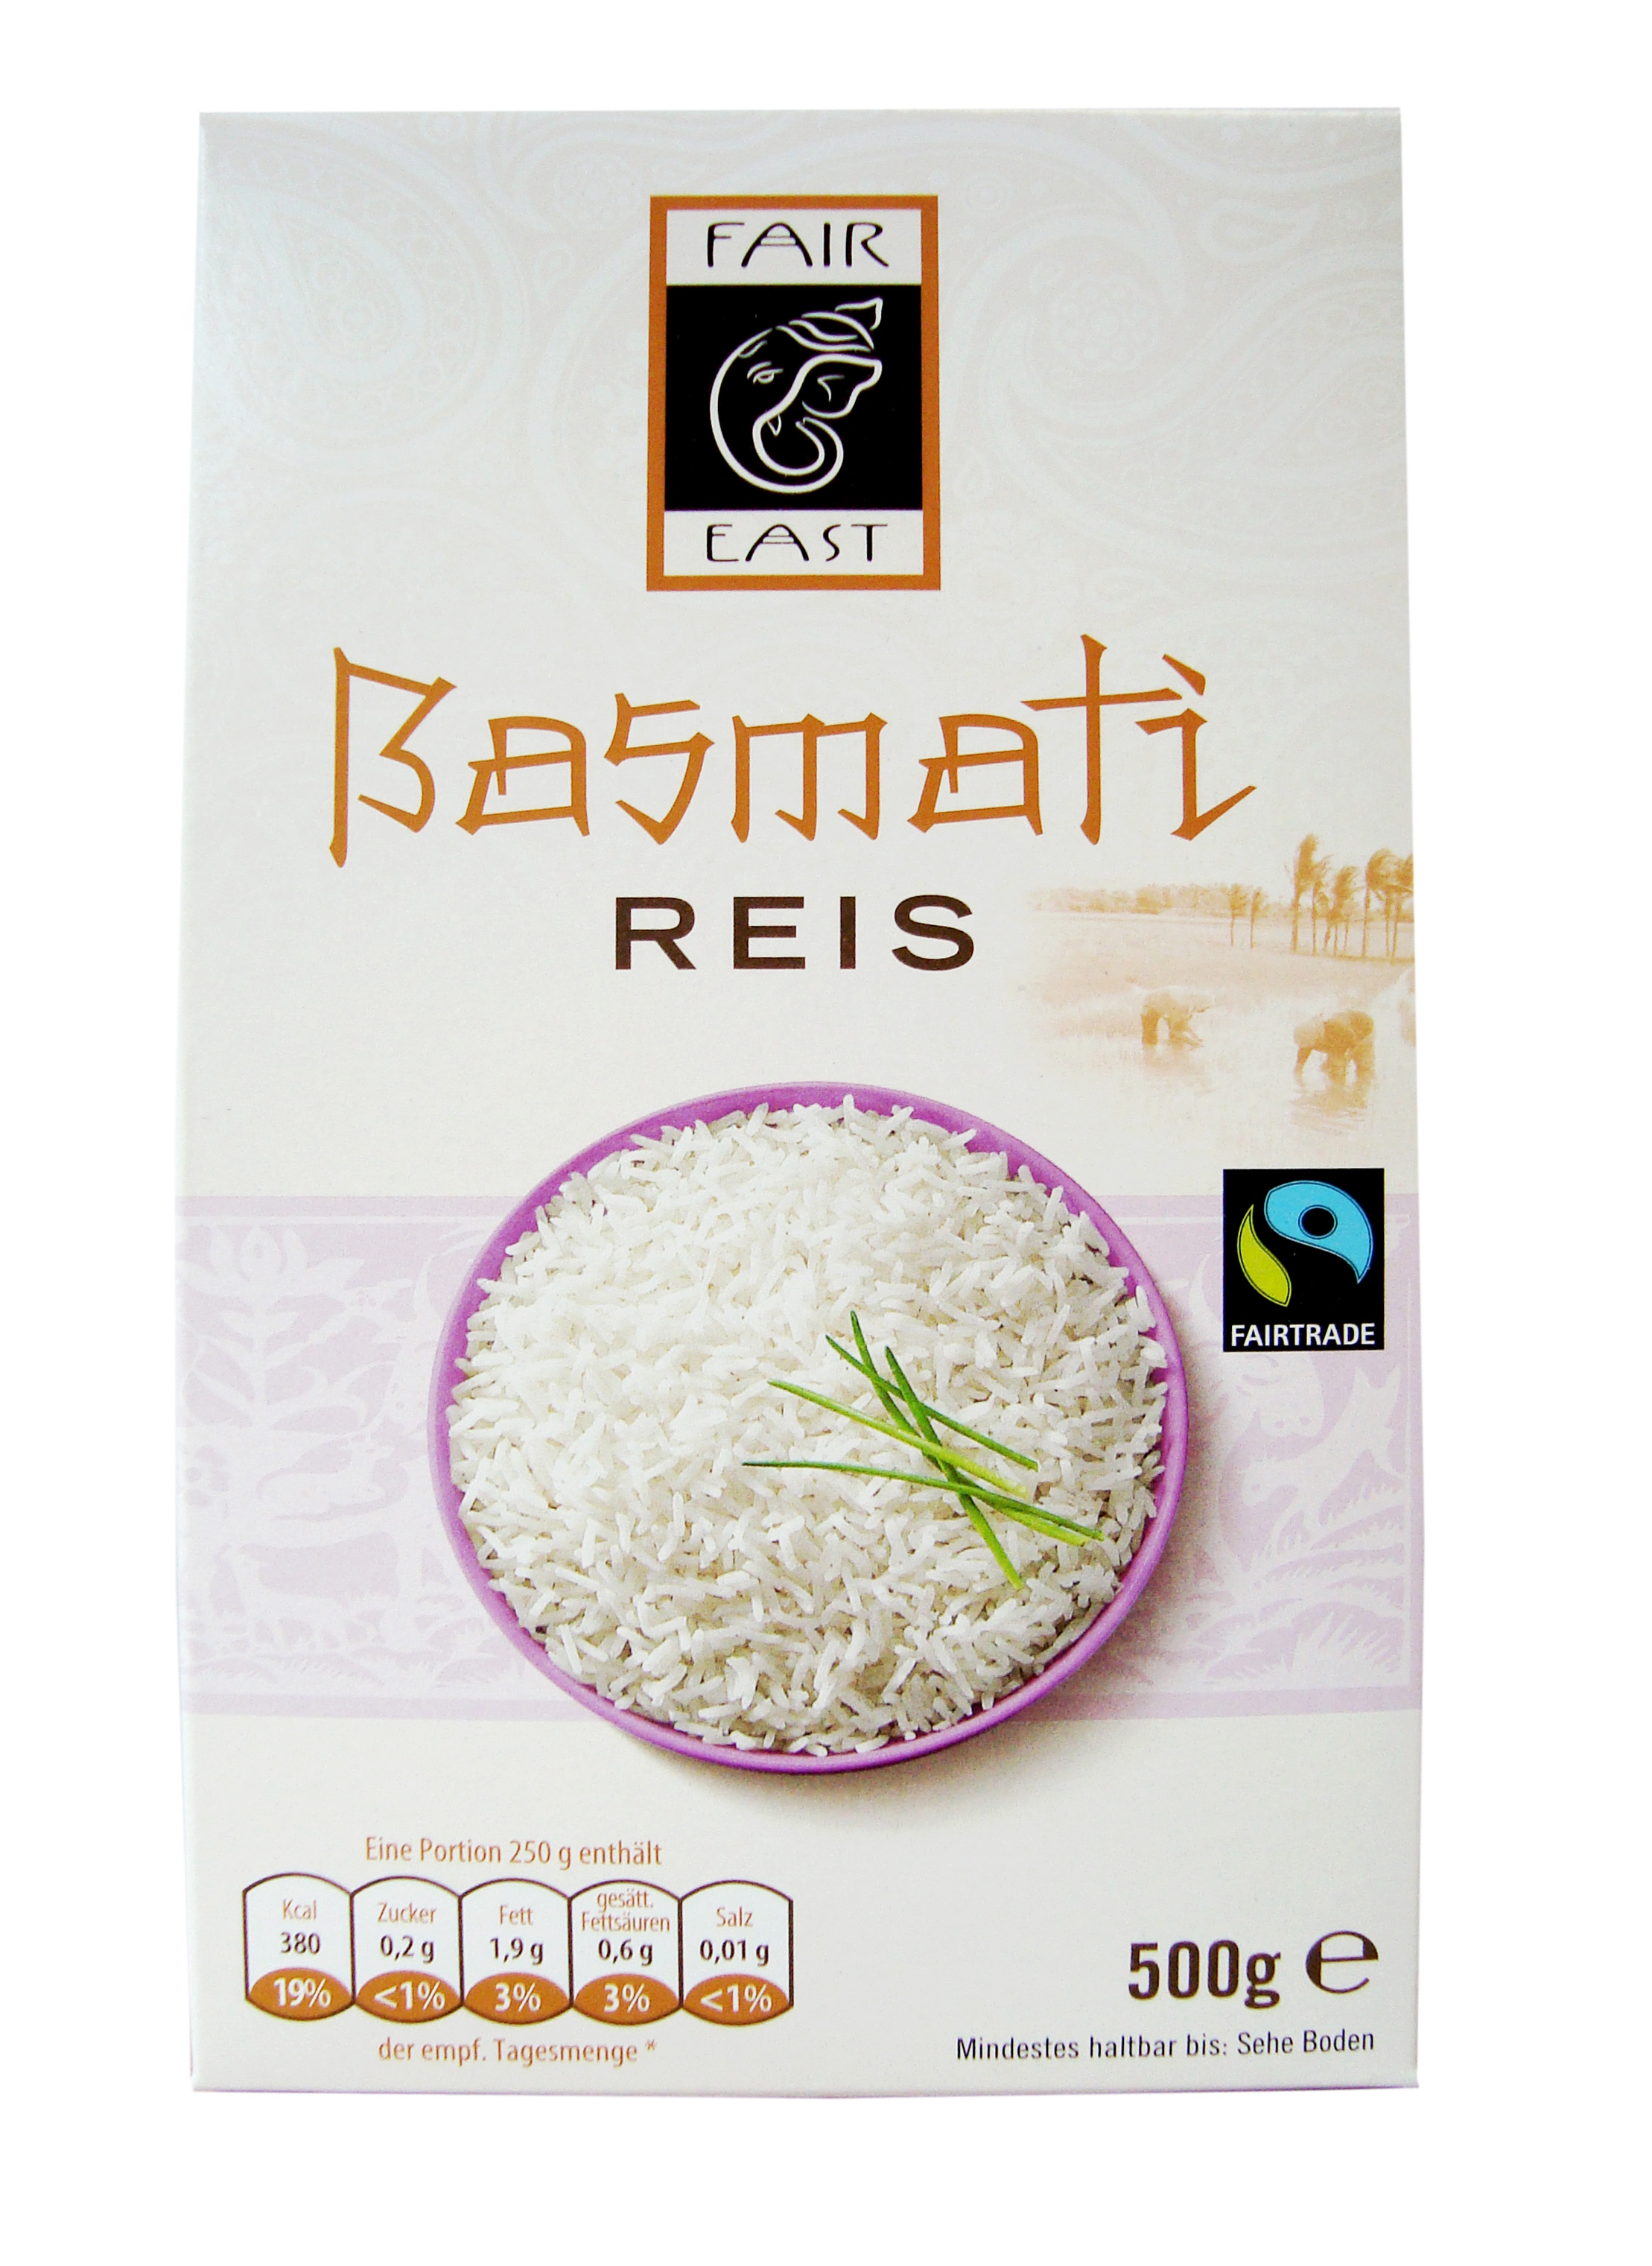 Fair East Basmati Reis